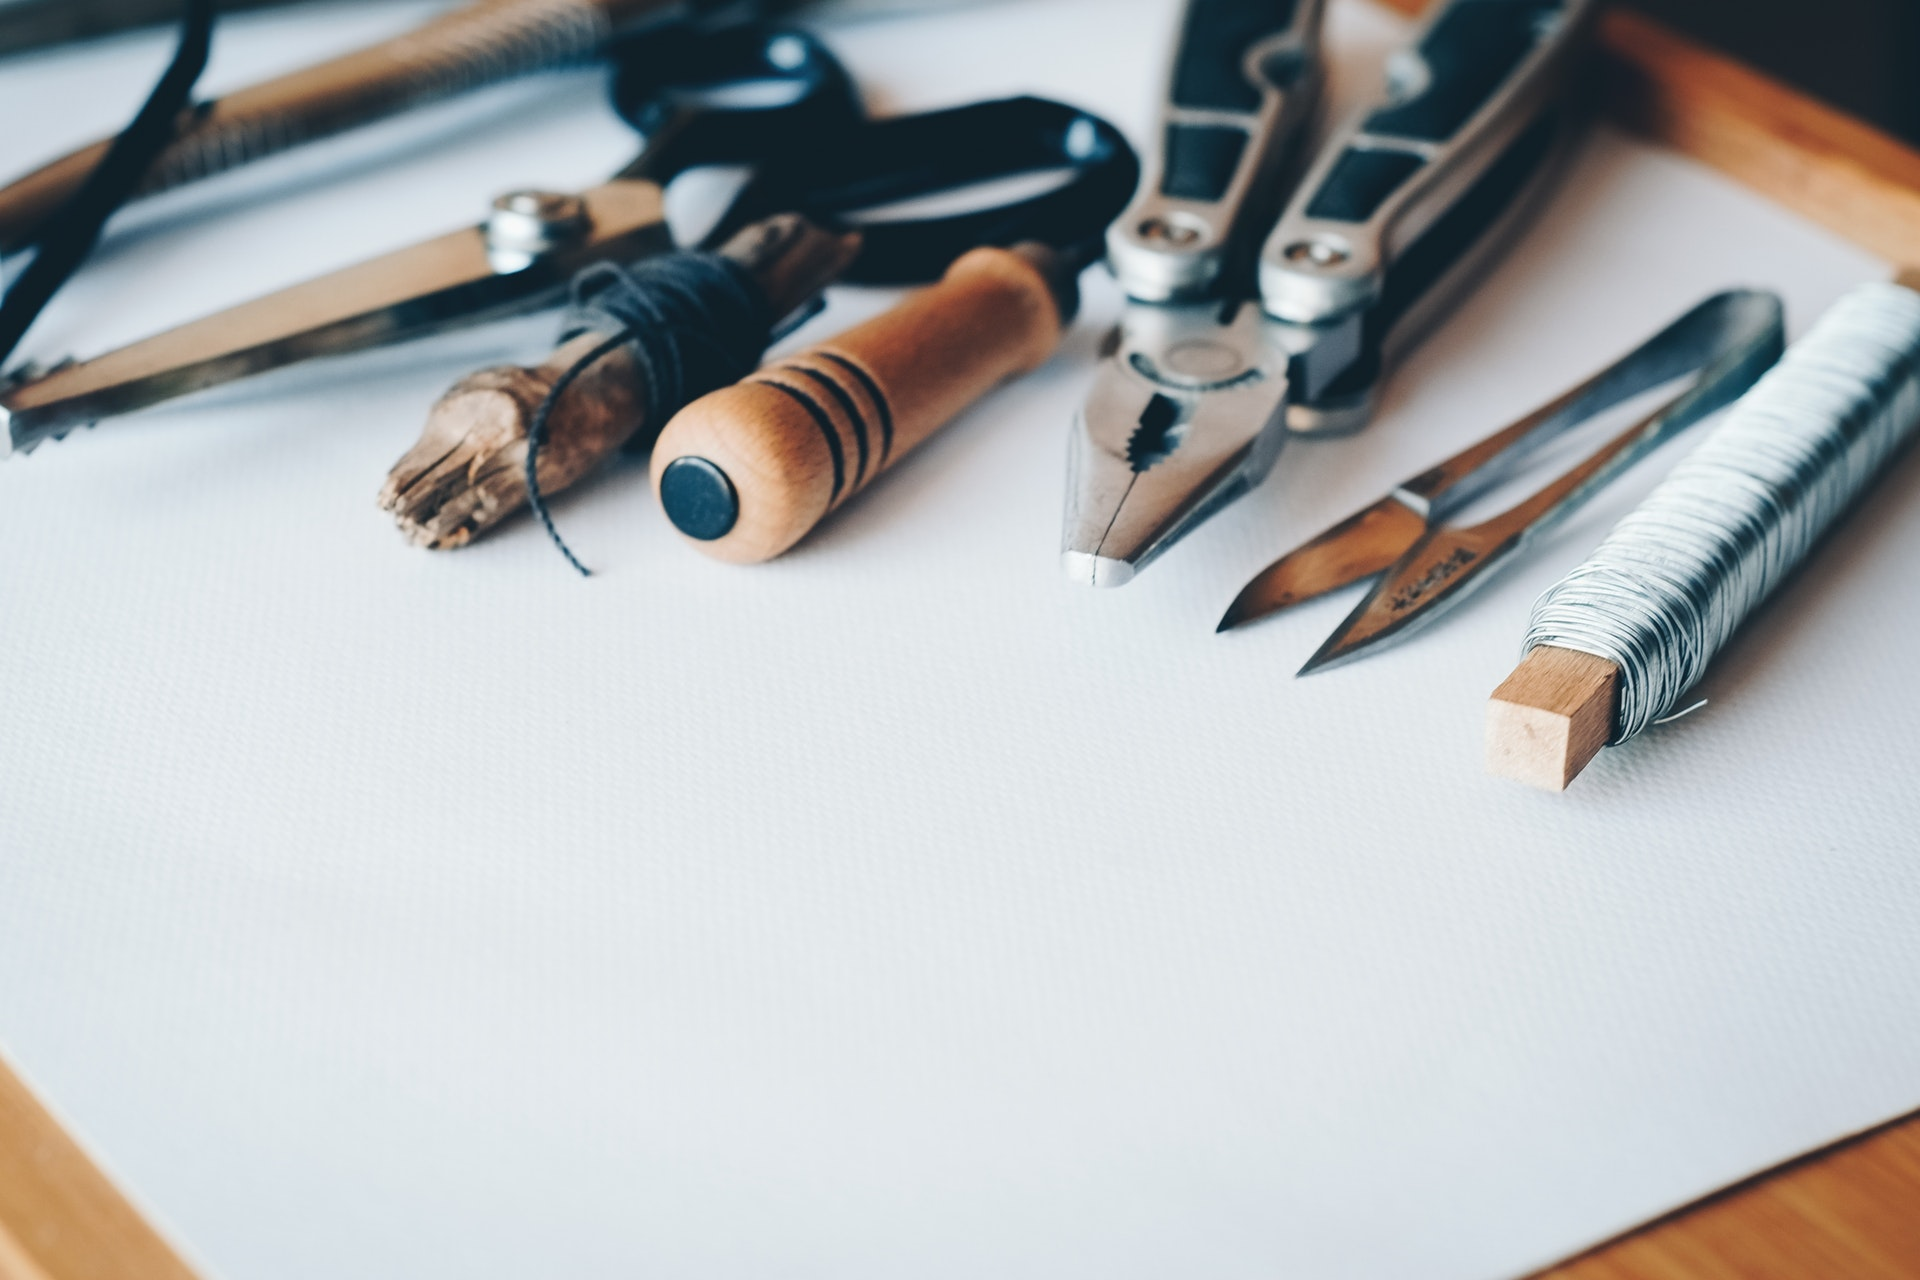 DIY tools with Lincoln